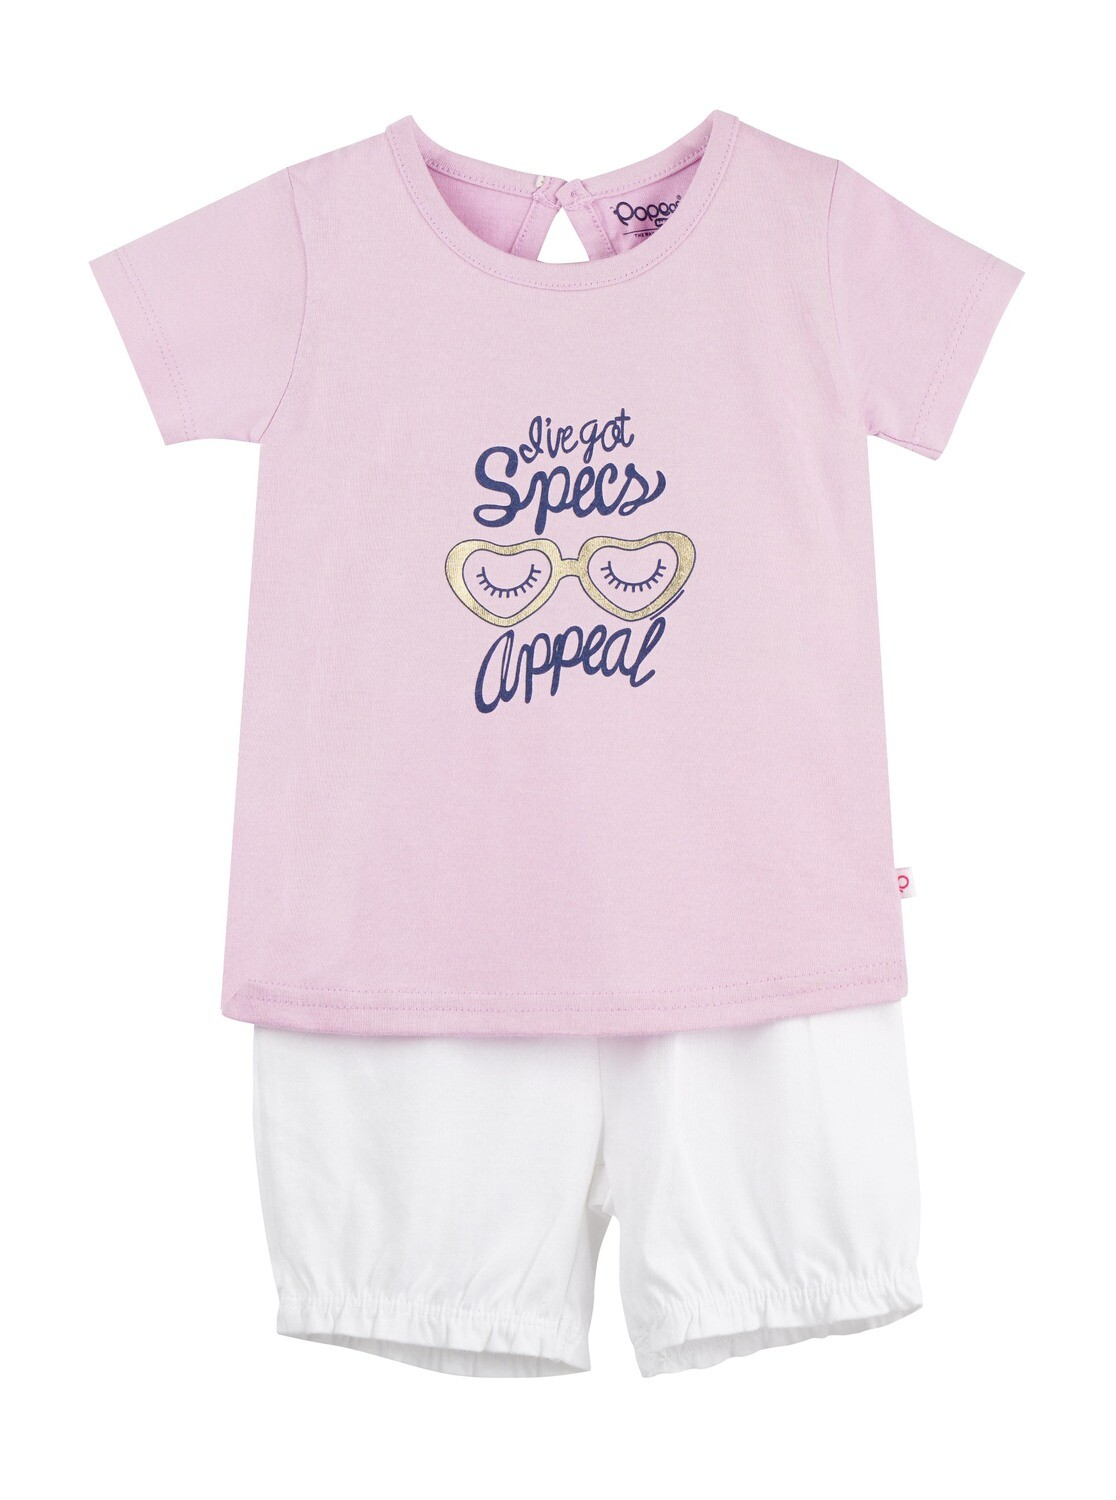 LEVINE Orchid Bouquet Half sleeve Top and Shorts for Baby Girls